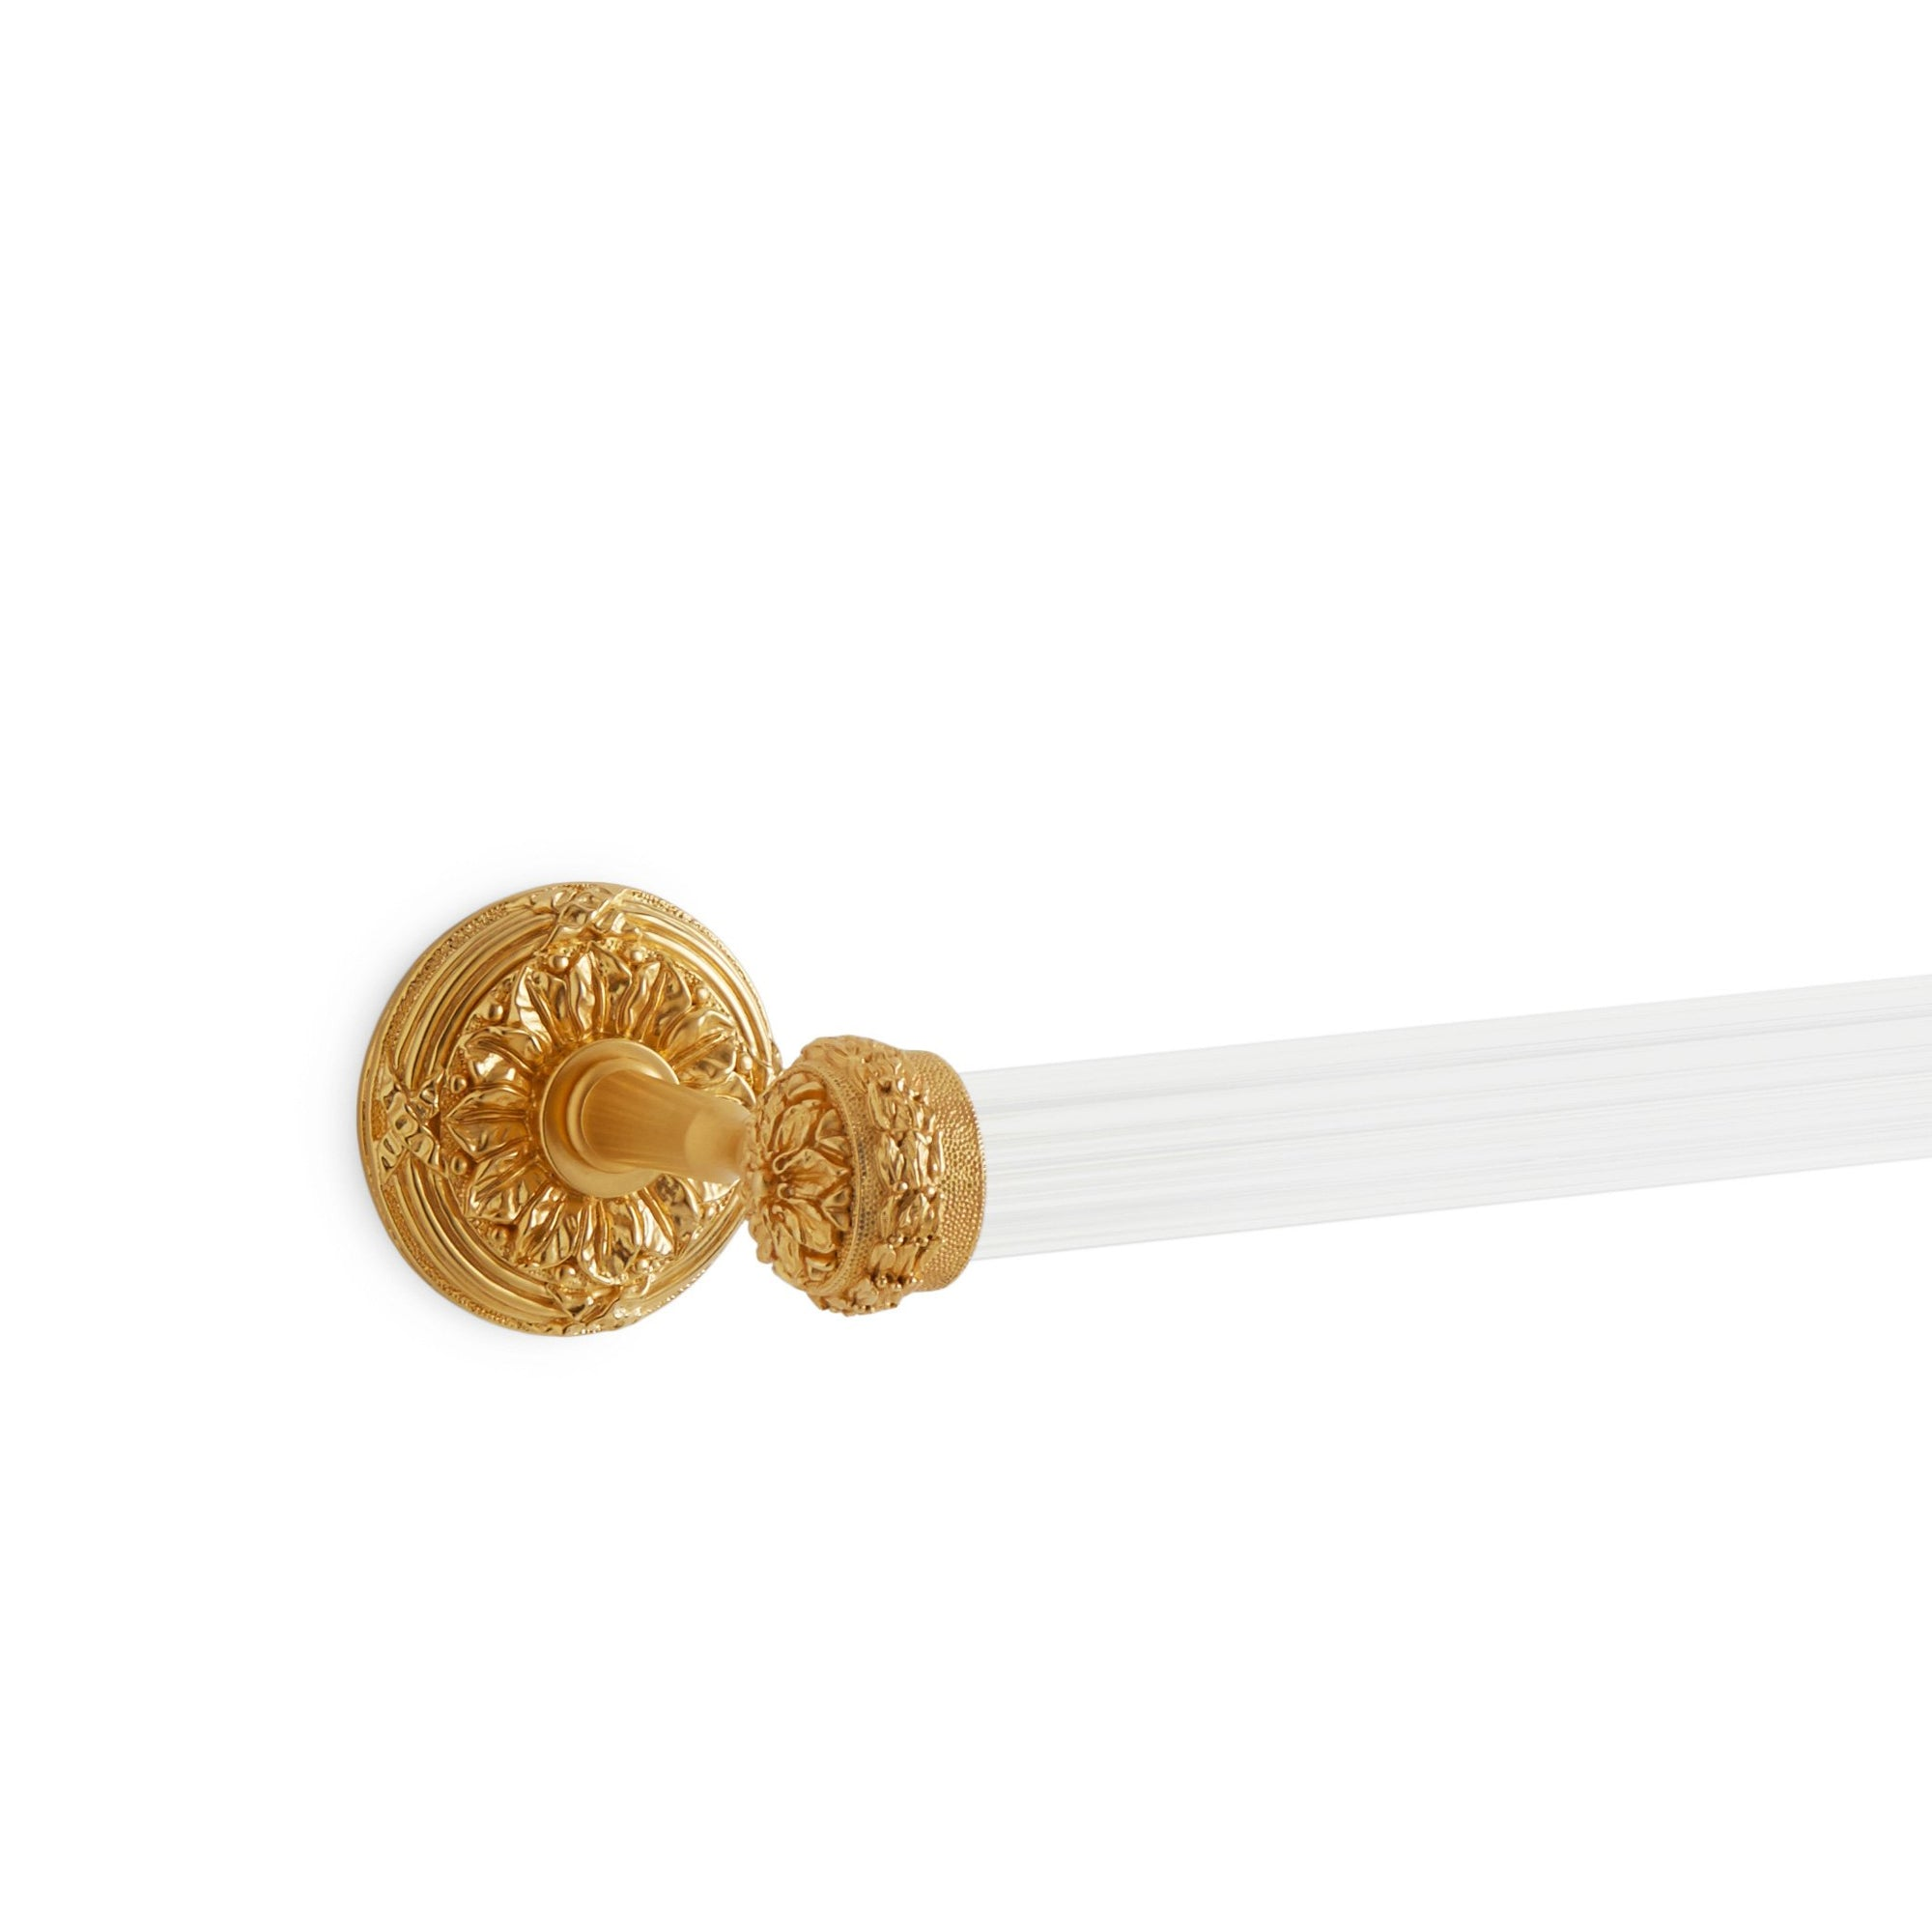 3686-30FL-GP Sherle Wagner International Ribbon & Reed Towel Bar in Gold Plate metal finish